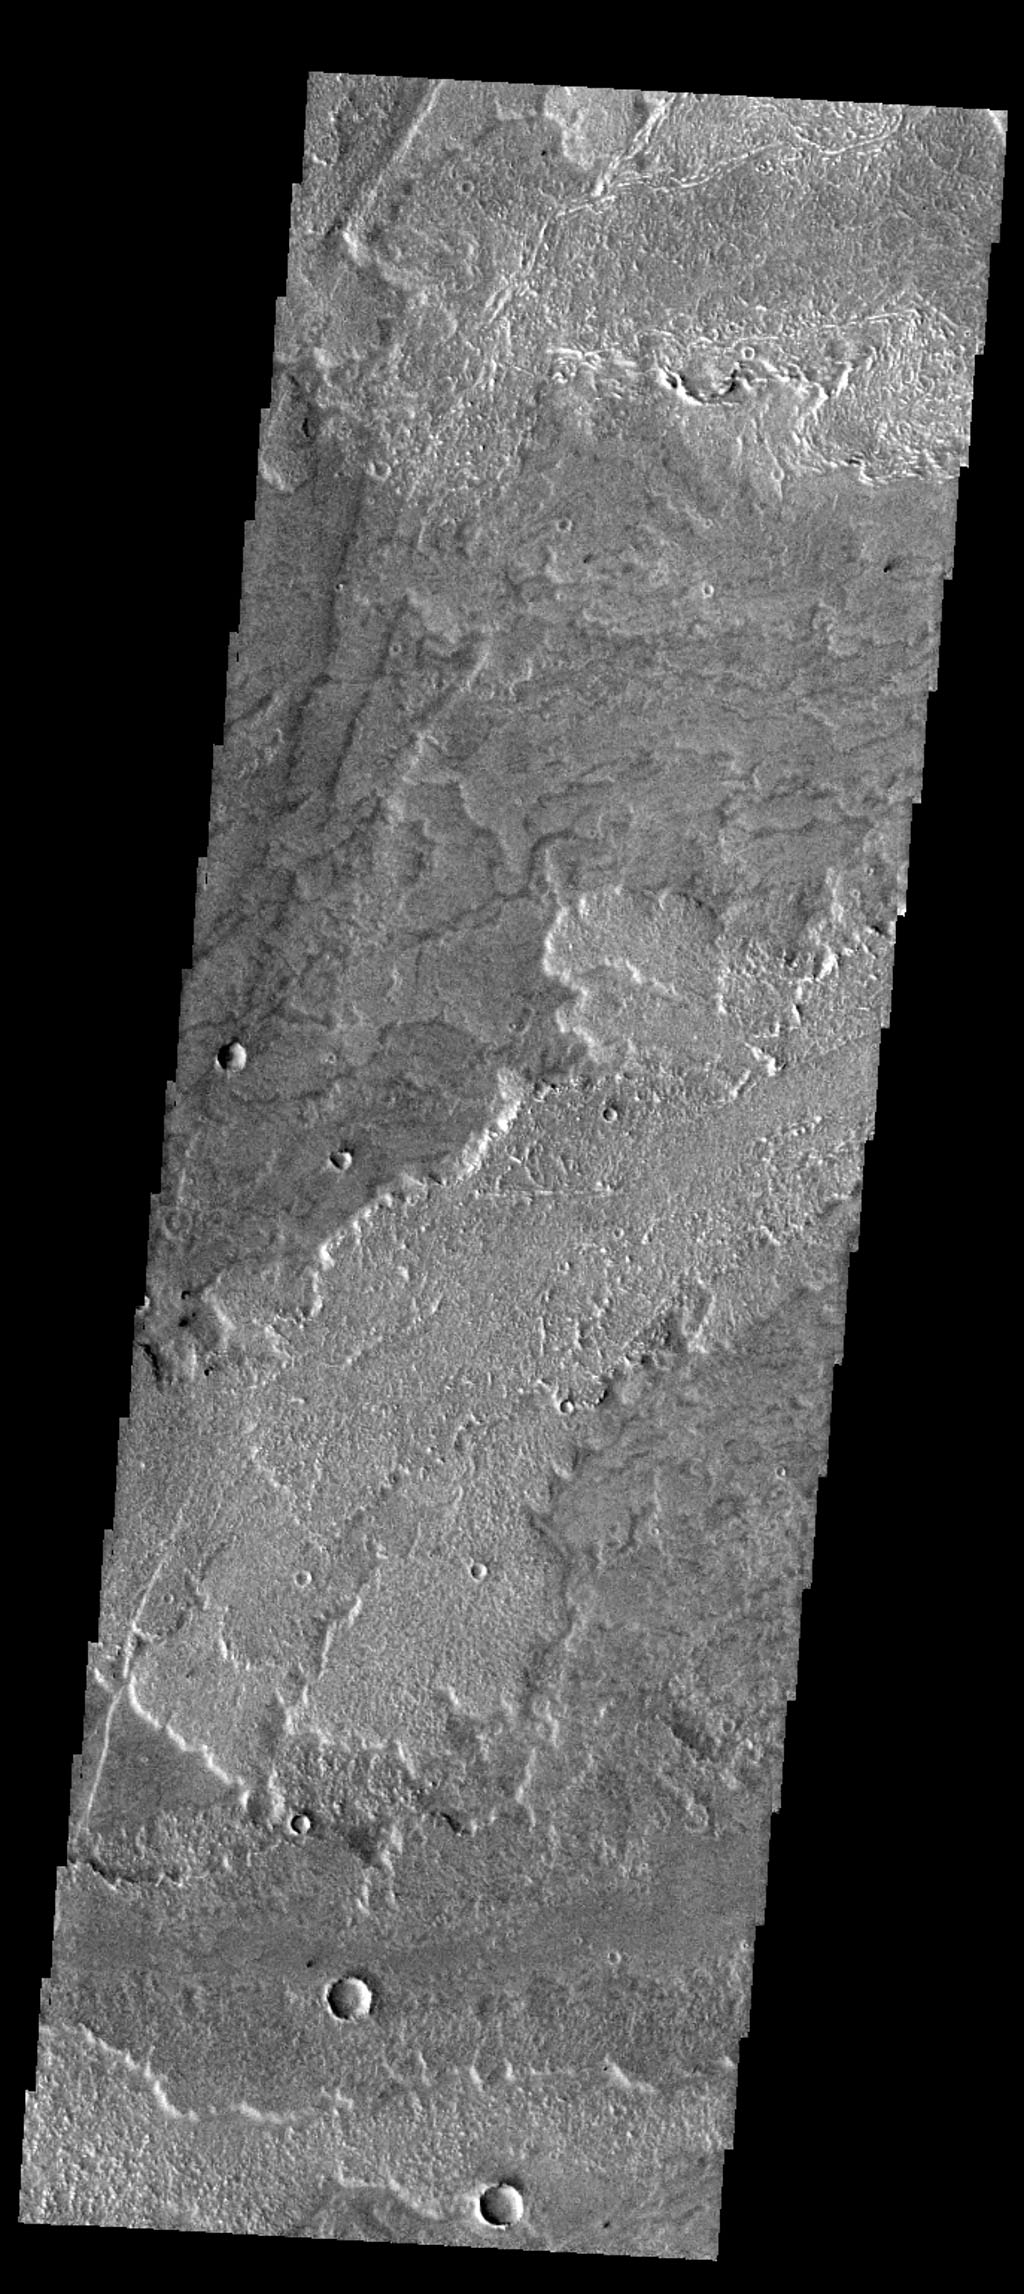 This image from NASA's Mars Odyssey spacecraft shows lava flows from Arsia Mons on Mars.